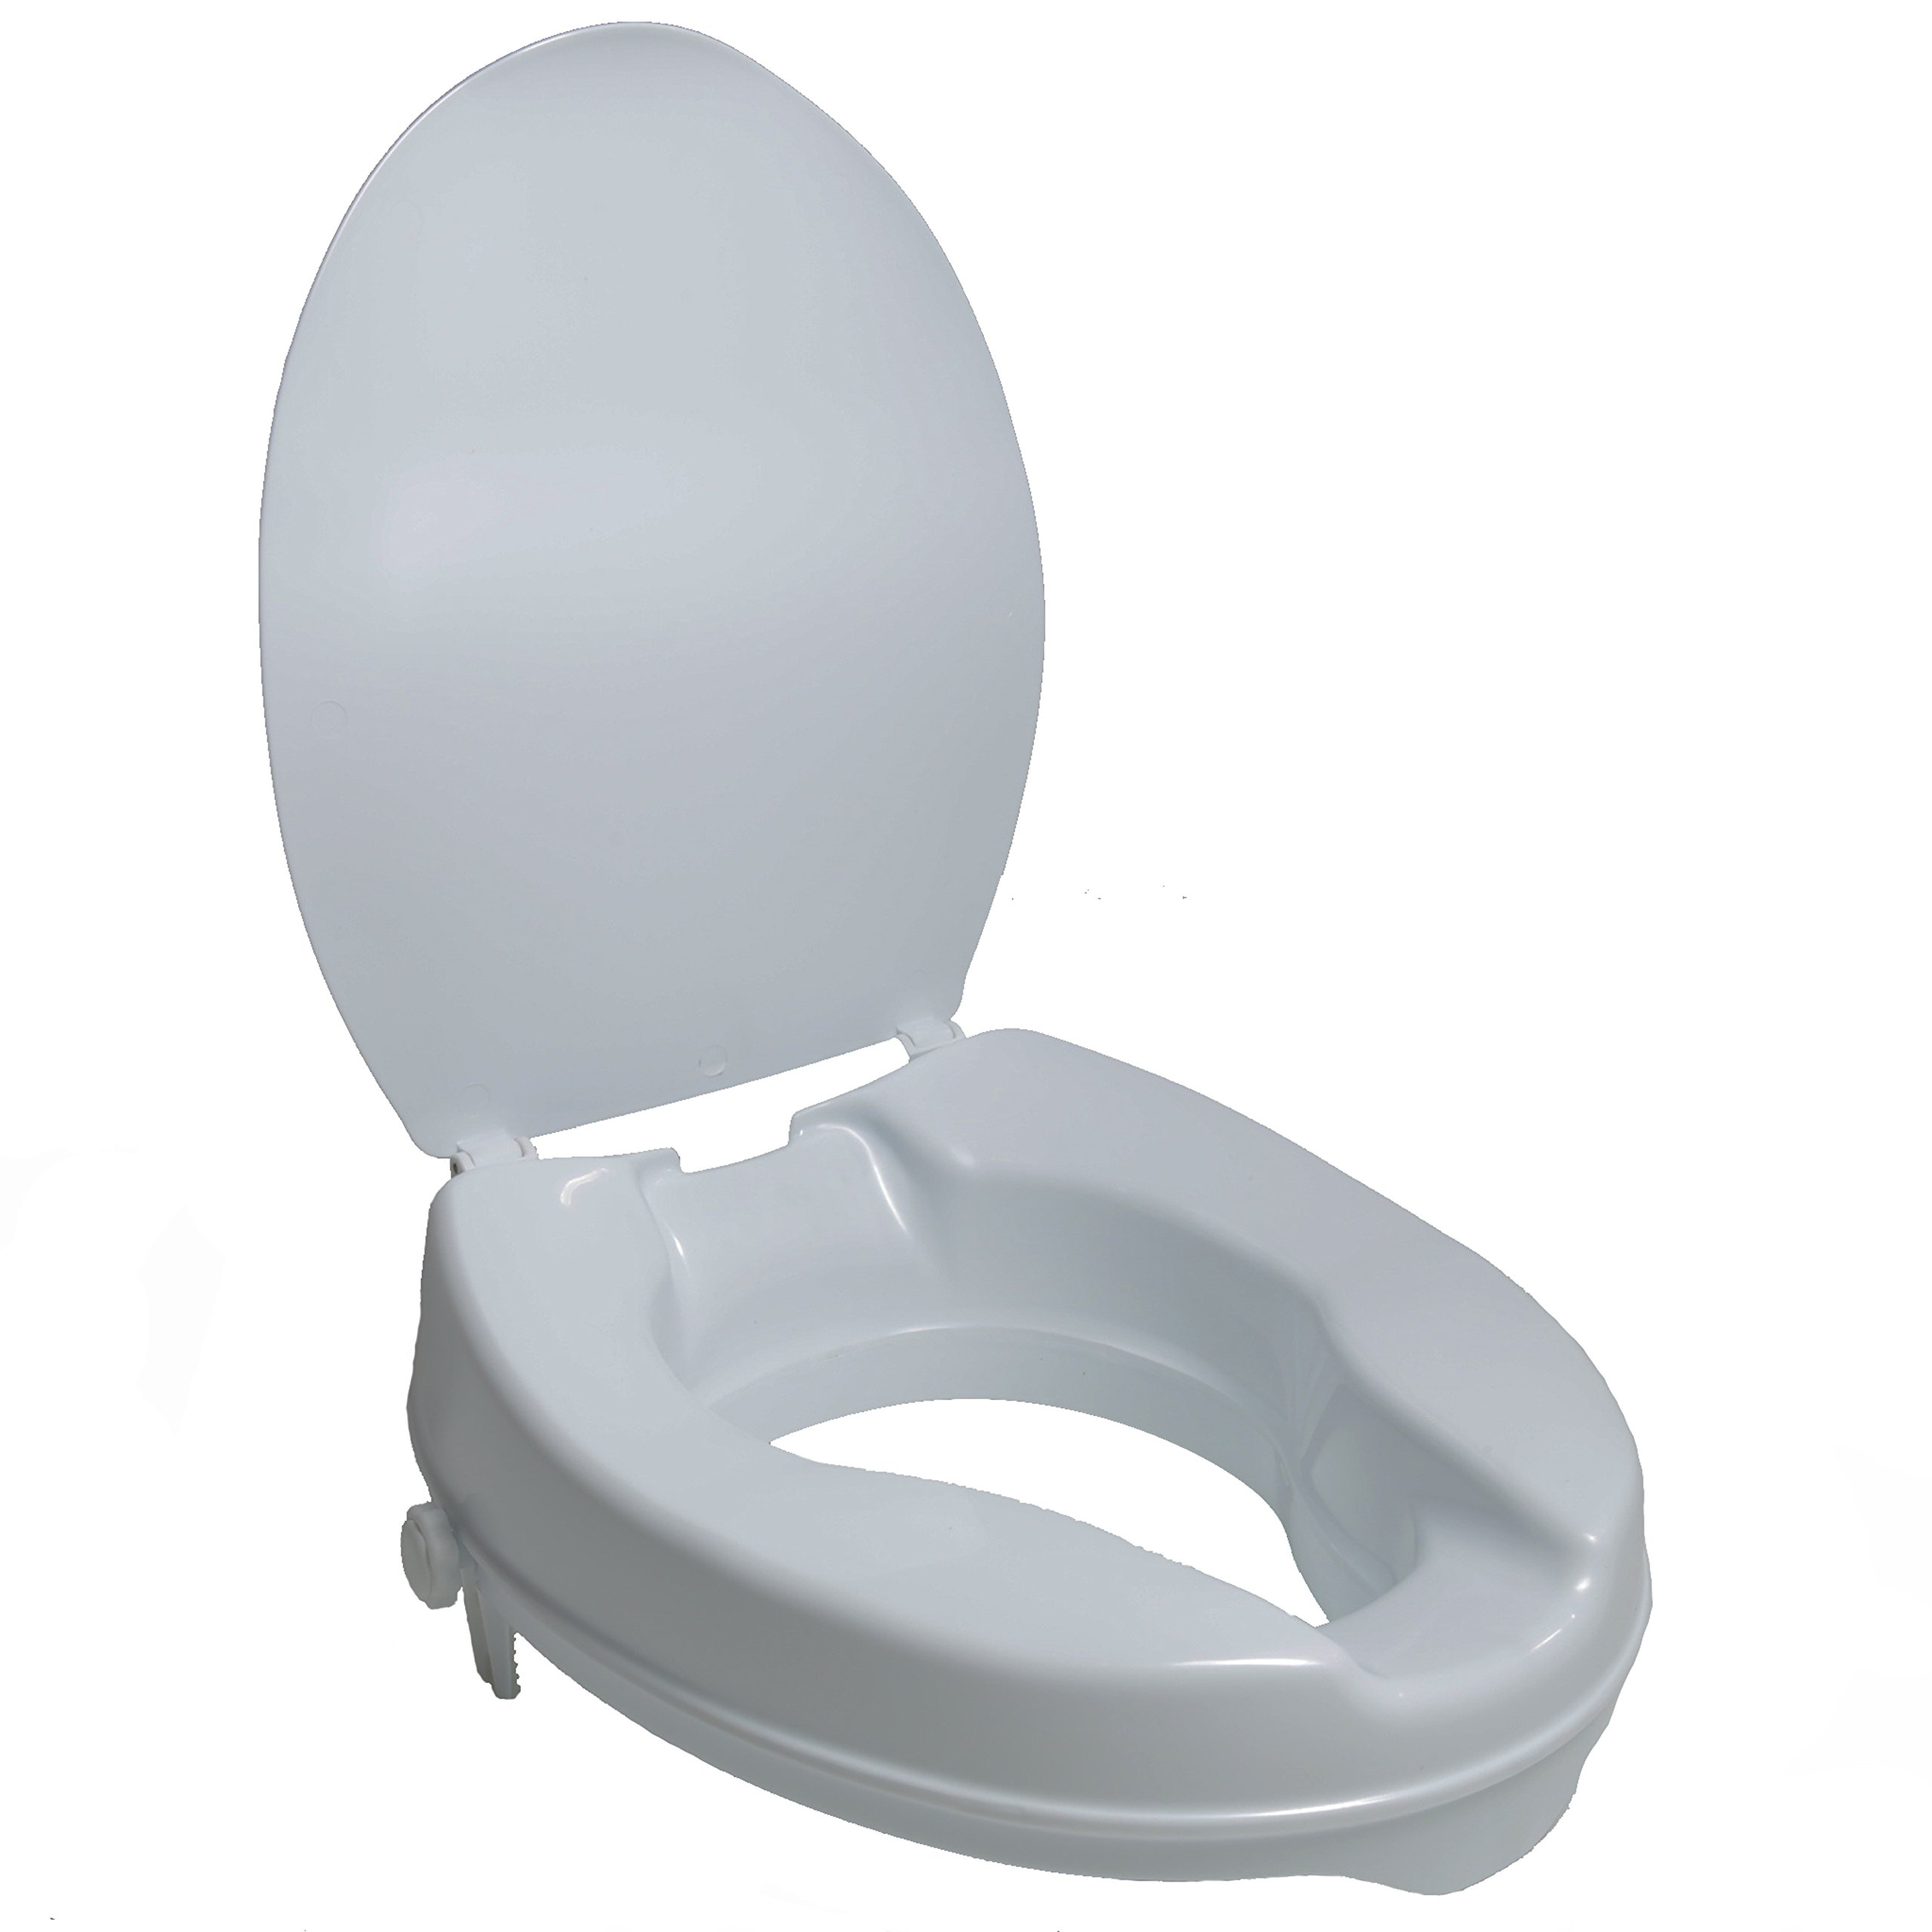 PCP 2-Inch Raised Standard Toilet Seat, Increase Height Over Commode, Low Profile Elevated, Includes Lid, Tightening Stability Safety Clamps by PCP